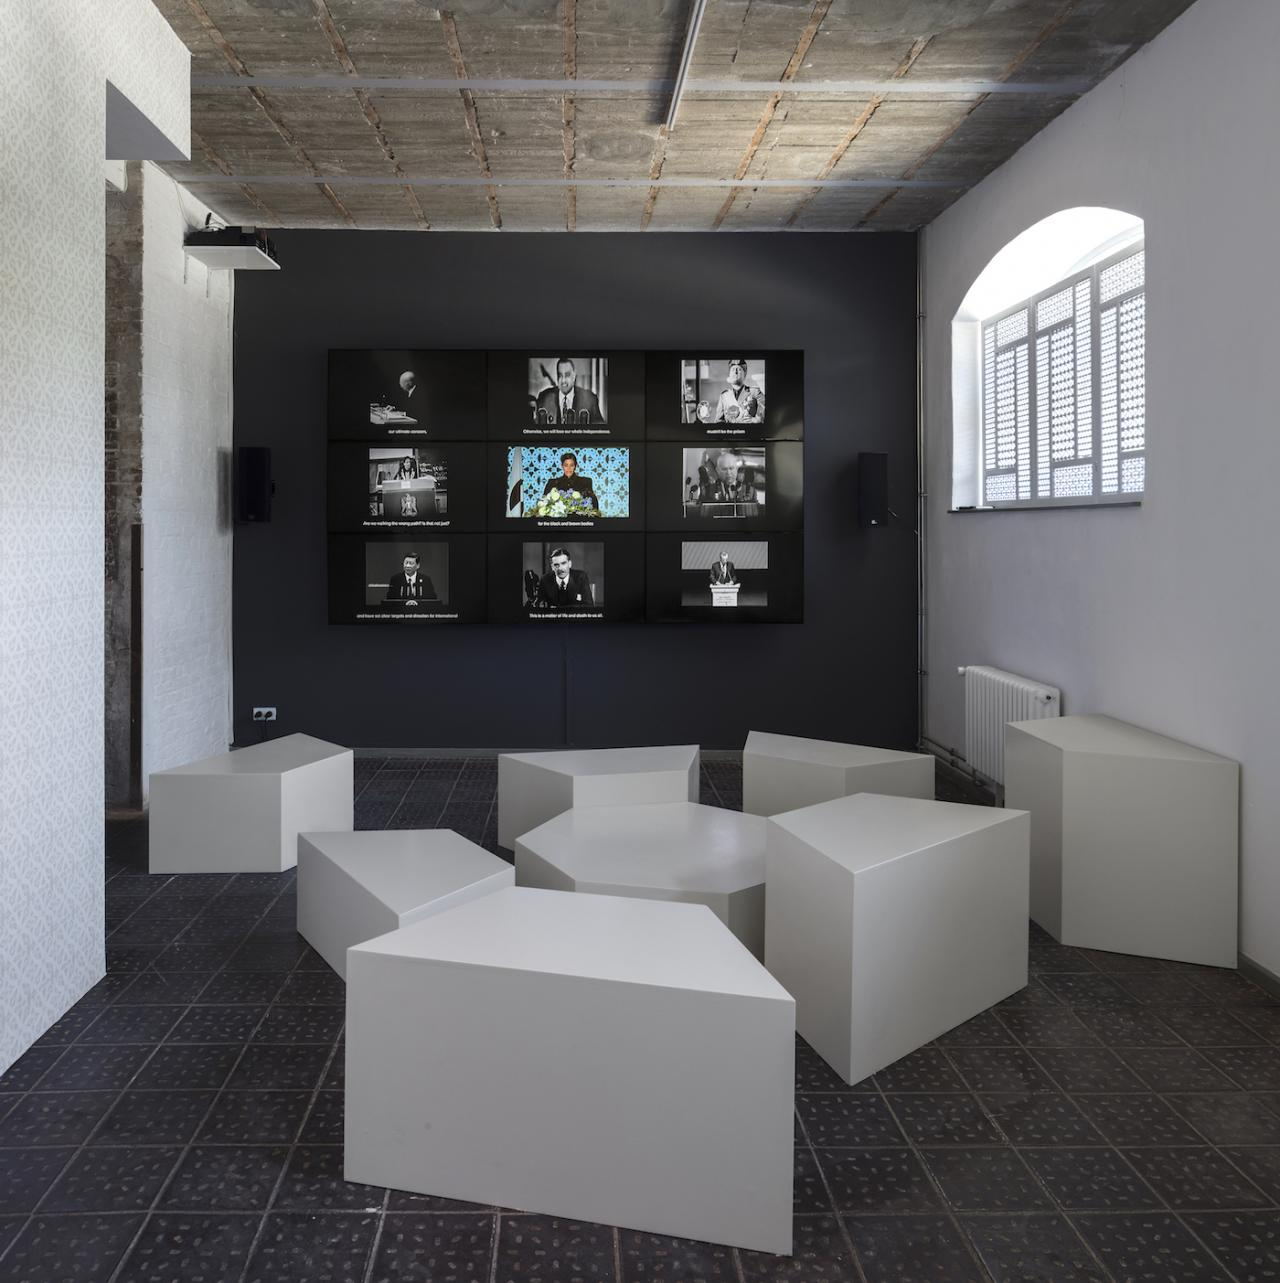 Heba Y. Amin Operation Sunken Sea (The Anti-Control Room)  (2018) Courtesy Heba Y. Amin; Zilberman Gallery, Istanbul/ Berlin, Photo: Timo Ohler